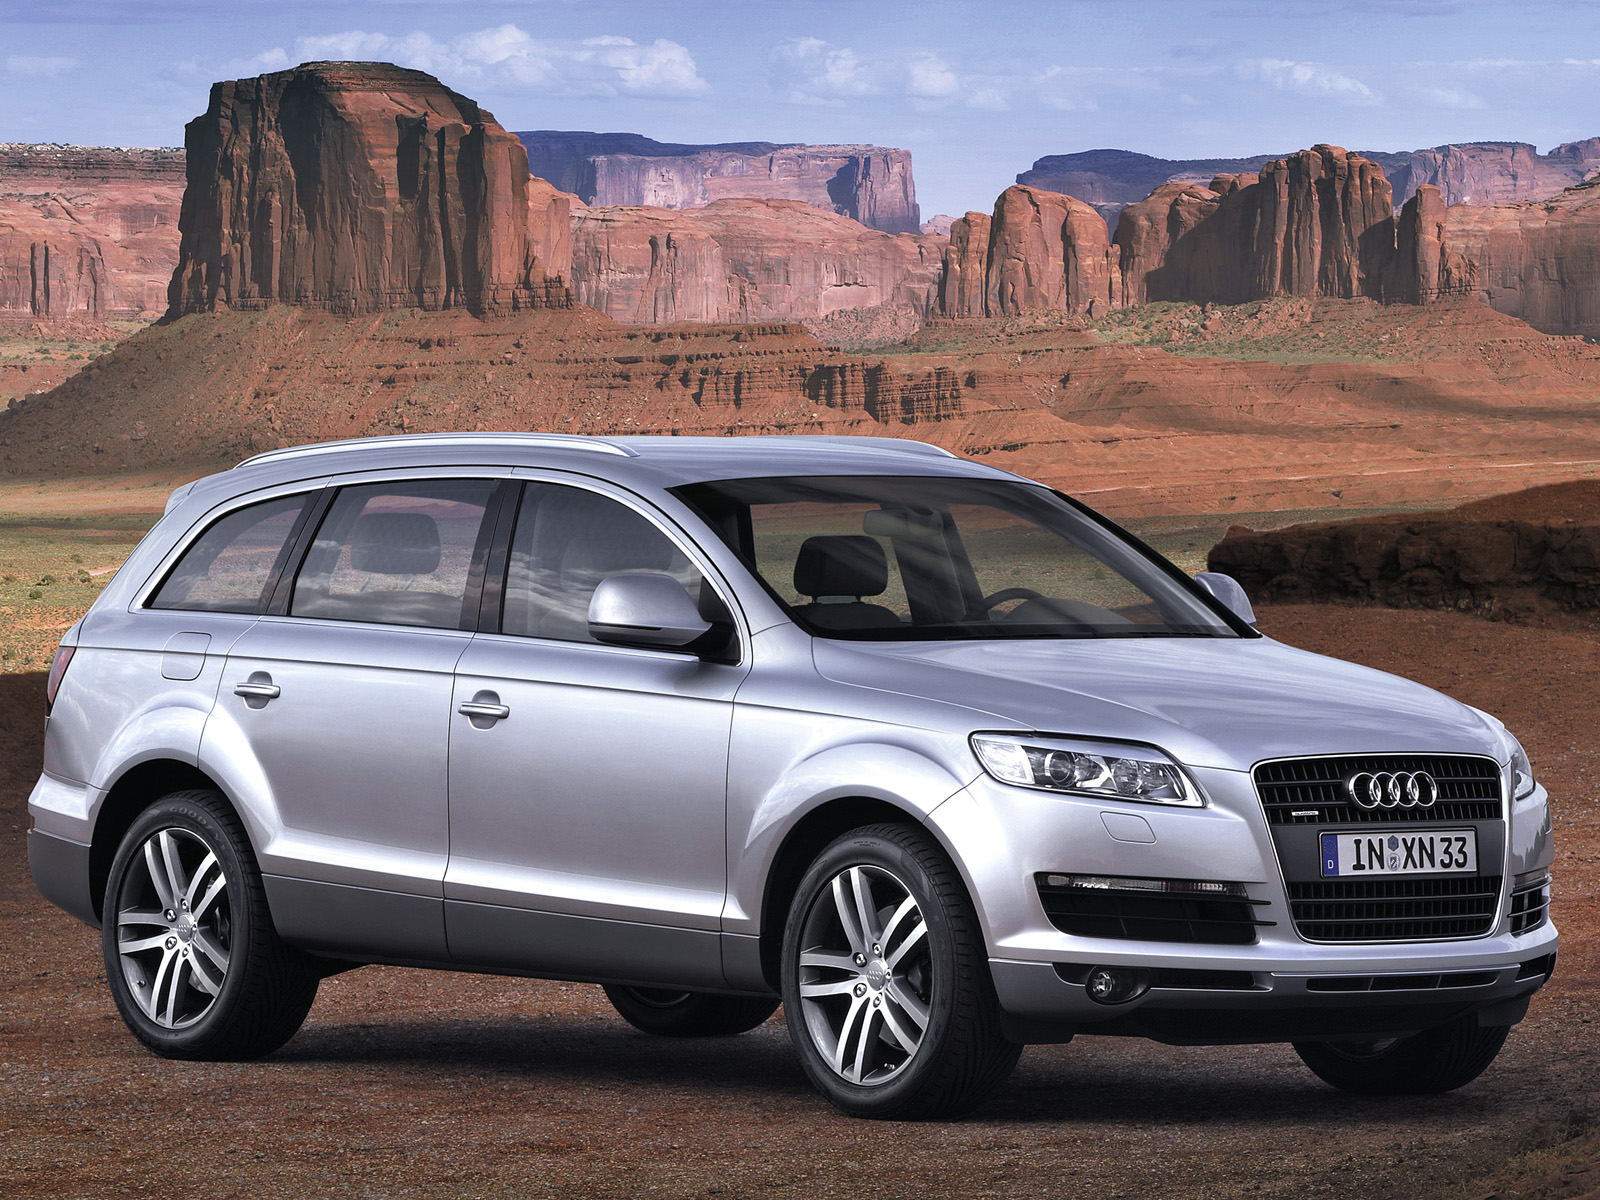 audi q7 3 0 tdi in pakistan q7 audi q7 3 0 tdi price specs features and comparisons pakwheels. Black Bedroom Furniture Sets. Home Design Ideas